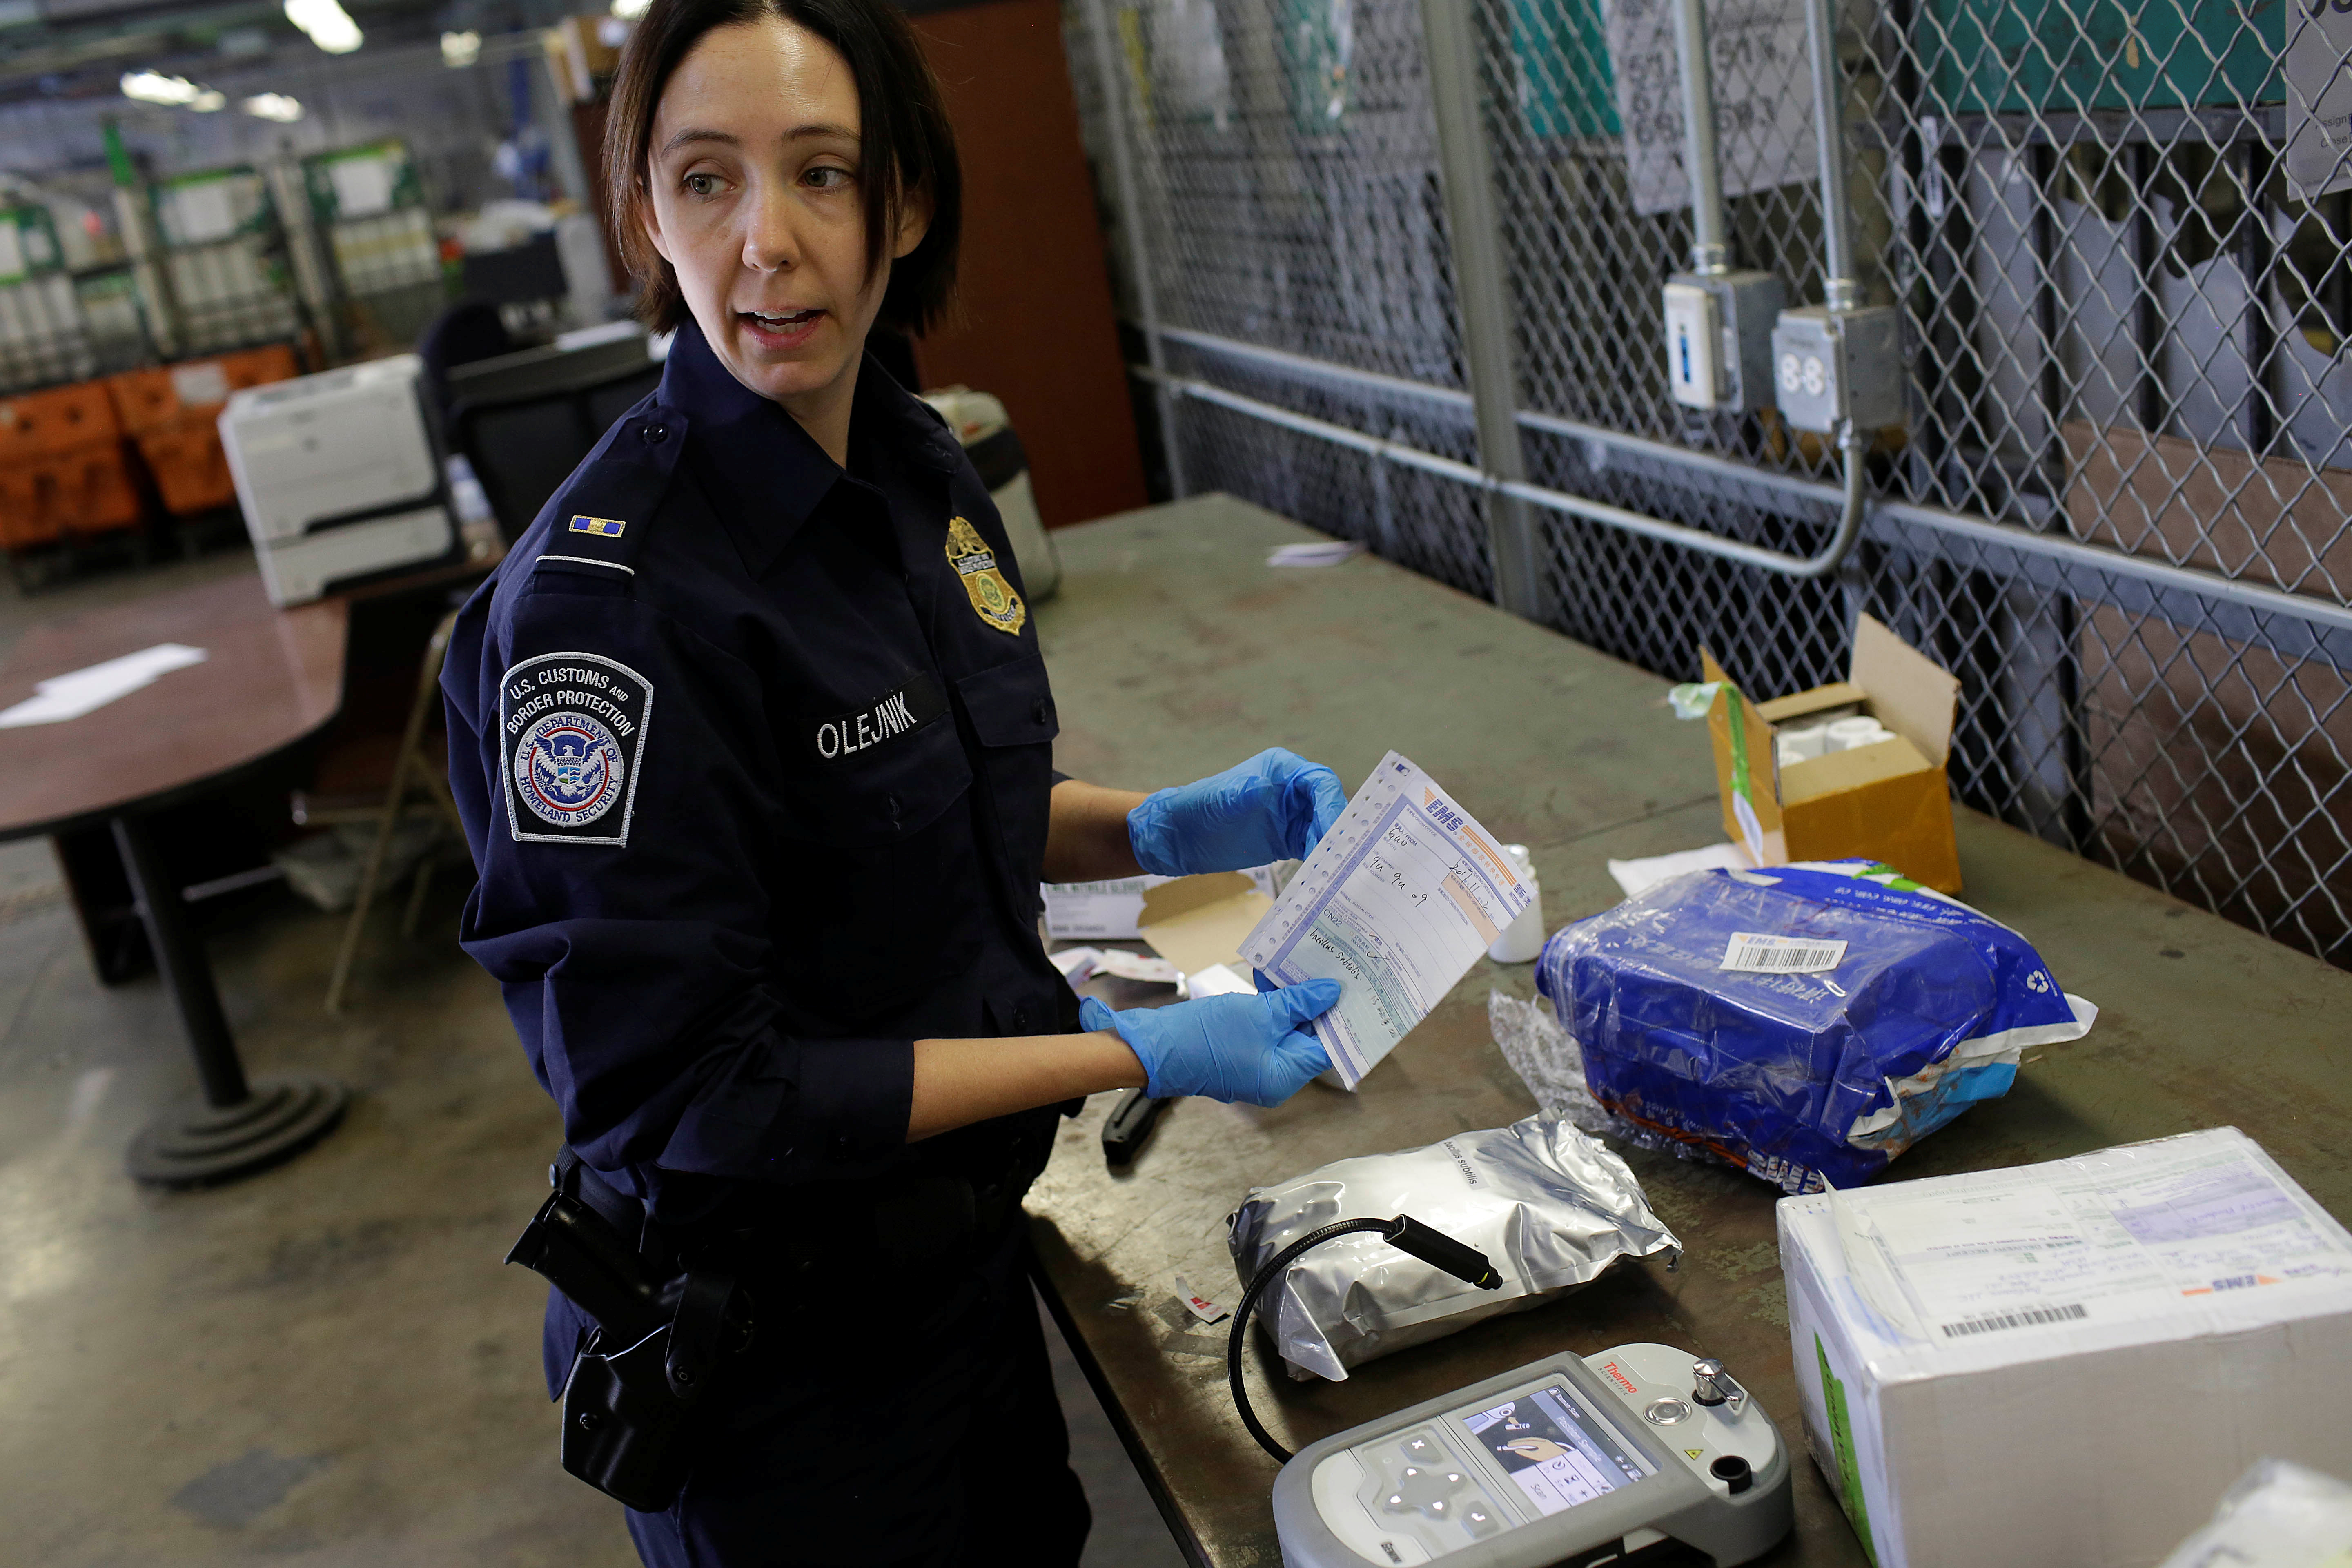 U.S. Customs and Border Protection officer Ella Olejnik looks at the paperwork on a package before inspecting the substance inside at the International Mail Facility at O'Hare International Airport in Chicago, Illinois, U.S. November 29, 2017. Picture taken November 29, 2017. REUTERS/Joshua Lott